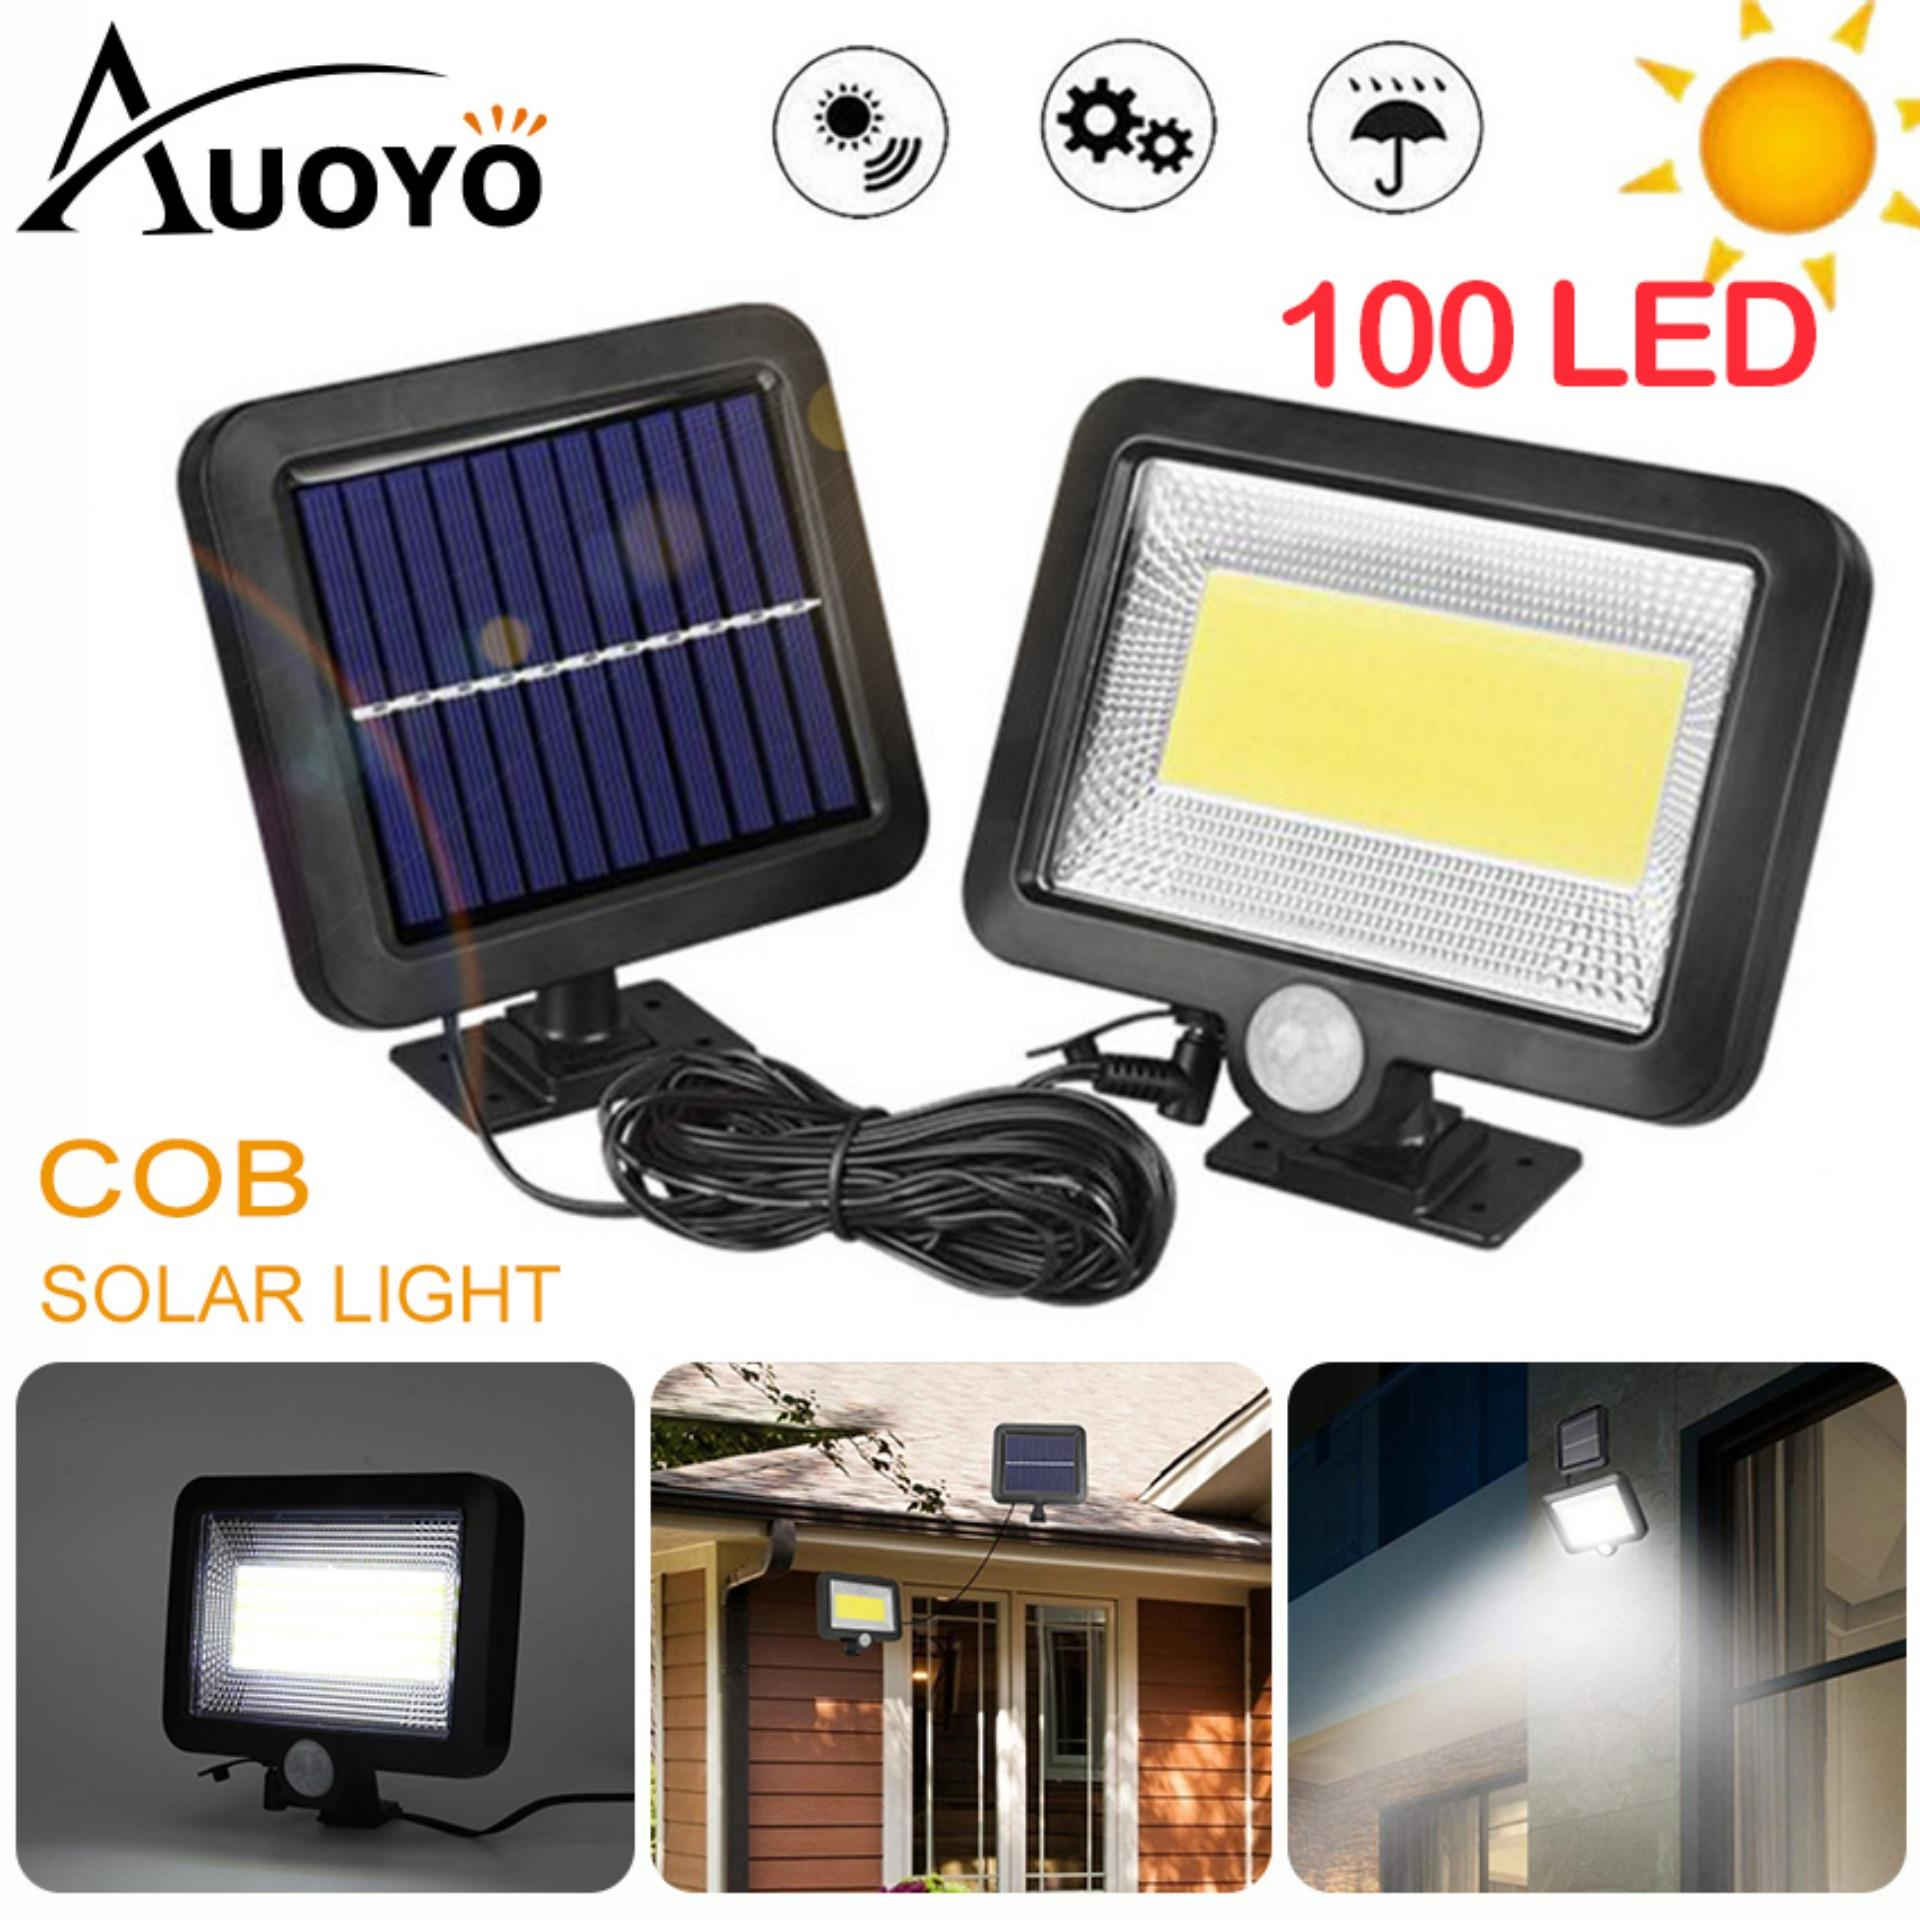 Auoyo 100LED Solar Wall Light Outdoor Lighting Motion Sensor COB LED Solar Light Waterproof Street Lamp Induction Wall Lamp for Garden Courtyard